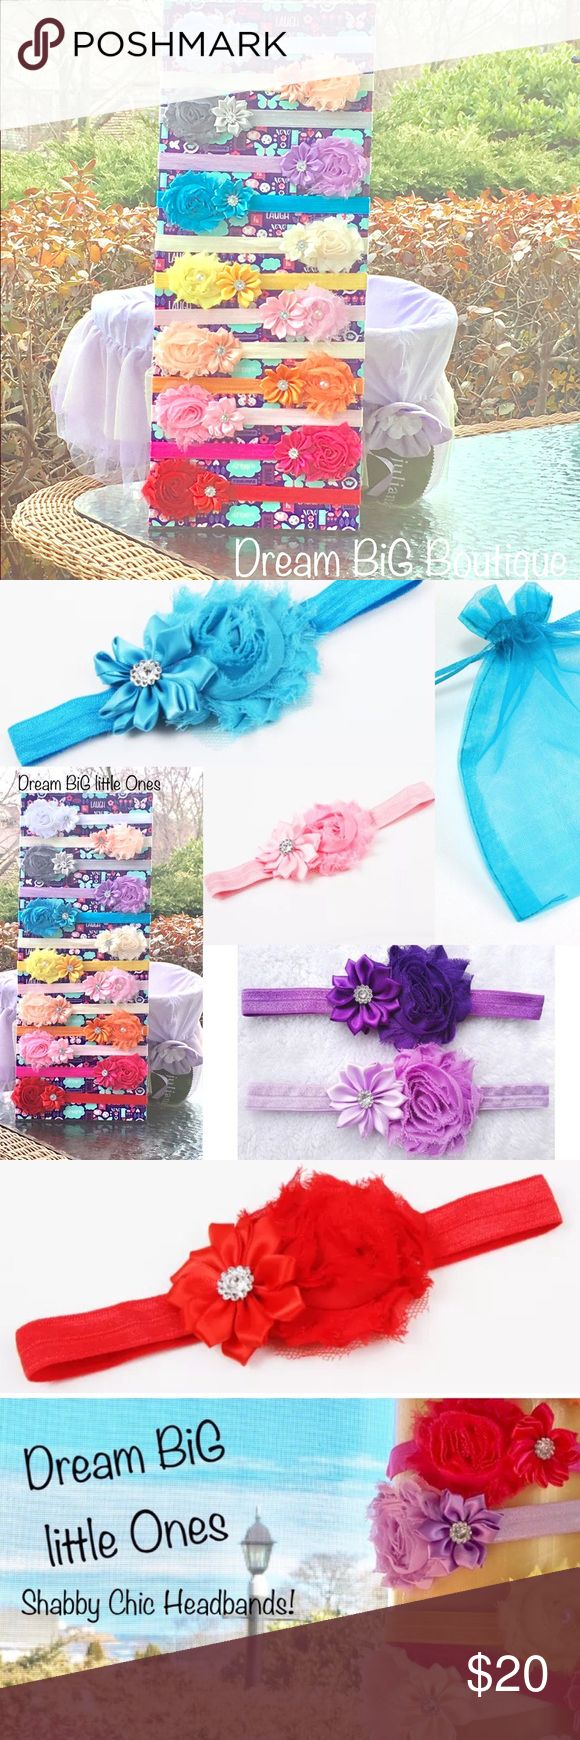 4 infant Girl baby boutique headband gift set pink Welcome to Dream BiG little Ones Boutique 19 Atlantic Rd, Gloucester, Massachusetts 4 Shabby Chic Rosette Vintage Headbands, in a sheer gift bag! Color of Headband: your choice! Color of Gift Bag: Totally Turquoise  Features a soft, nylon band with two flowers & rhinestones on top New in boutique packaging!  Fits approximately newborn up to 15 months You can pick the 4 colors you would like! Handmade Accessories Hair Accessories